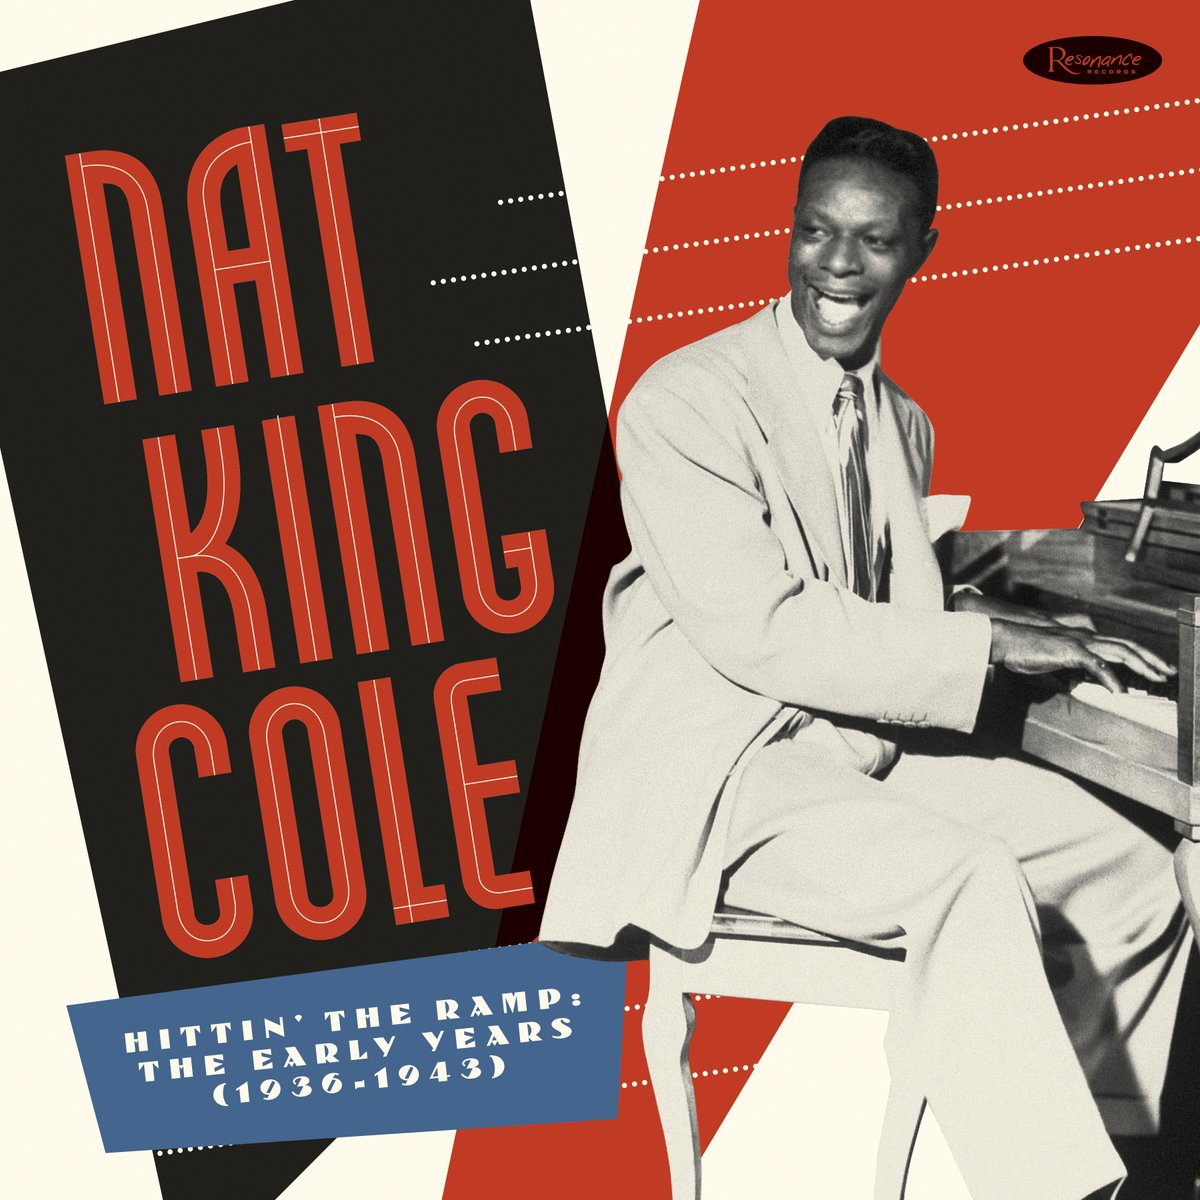 Congratulations to legend @natkingcole on the #GRAMMY nomination for Best Historical Album for 'HITTIN' THE RAMP: THE EARLY YEARS (1936 – 1943)'.  @RecordingAcad @ResonanceJazz